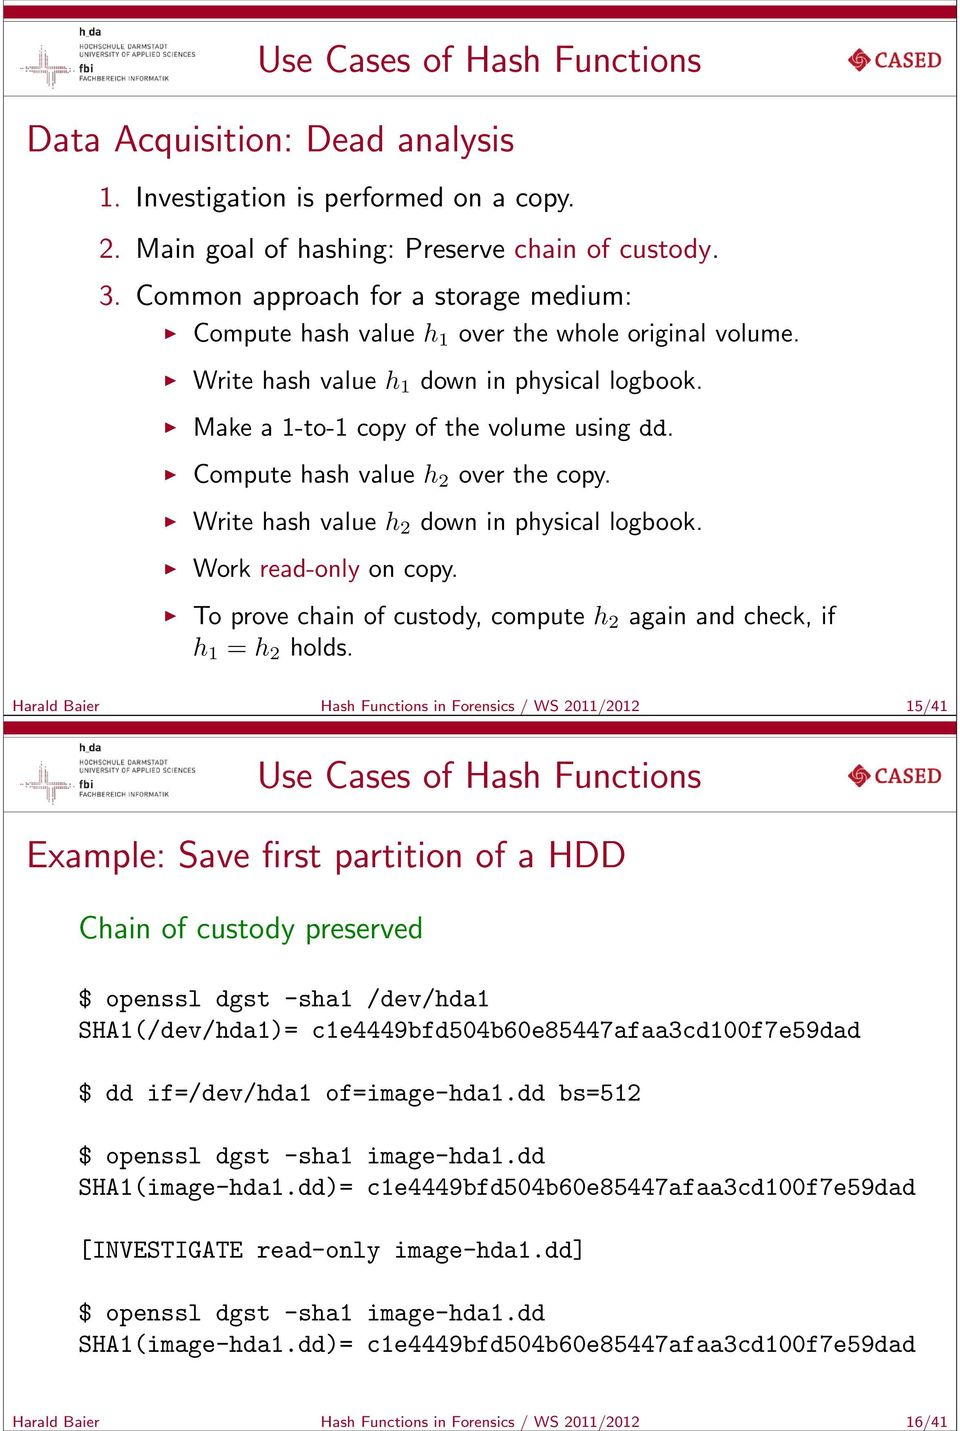 Compute hash value h 2 over the copy. Write hash value h2 down in physical logbook. Work read-only on copy. To prove chain of custody, compute h 2 again and check, if h 1 = h 2 holds.